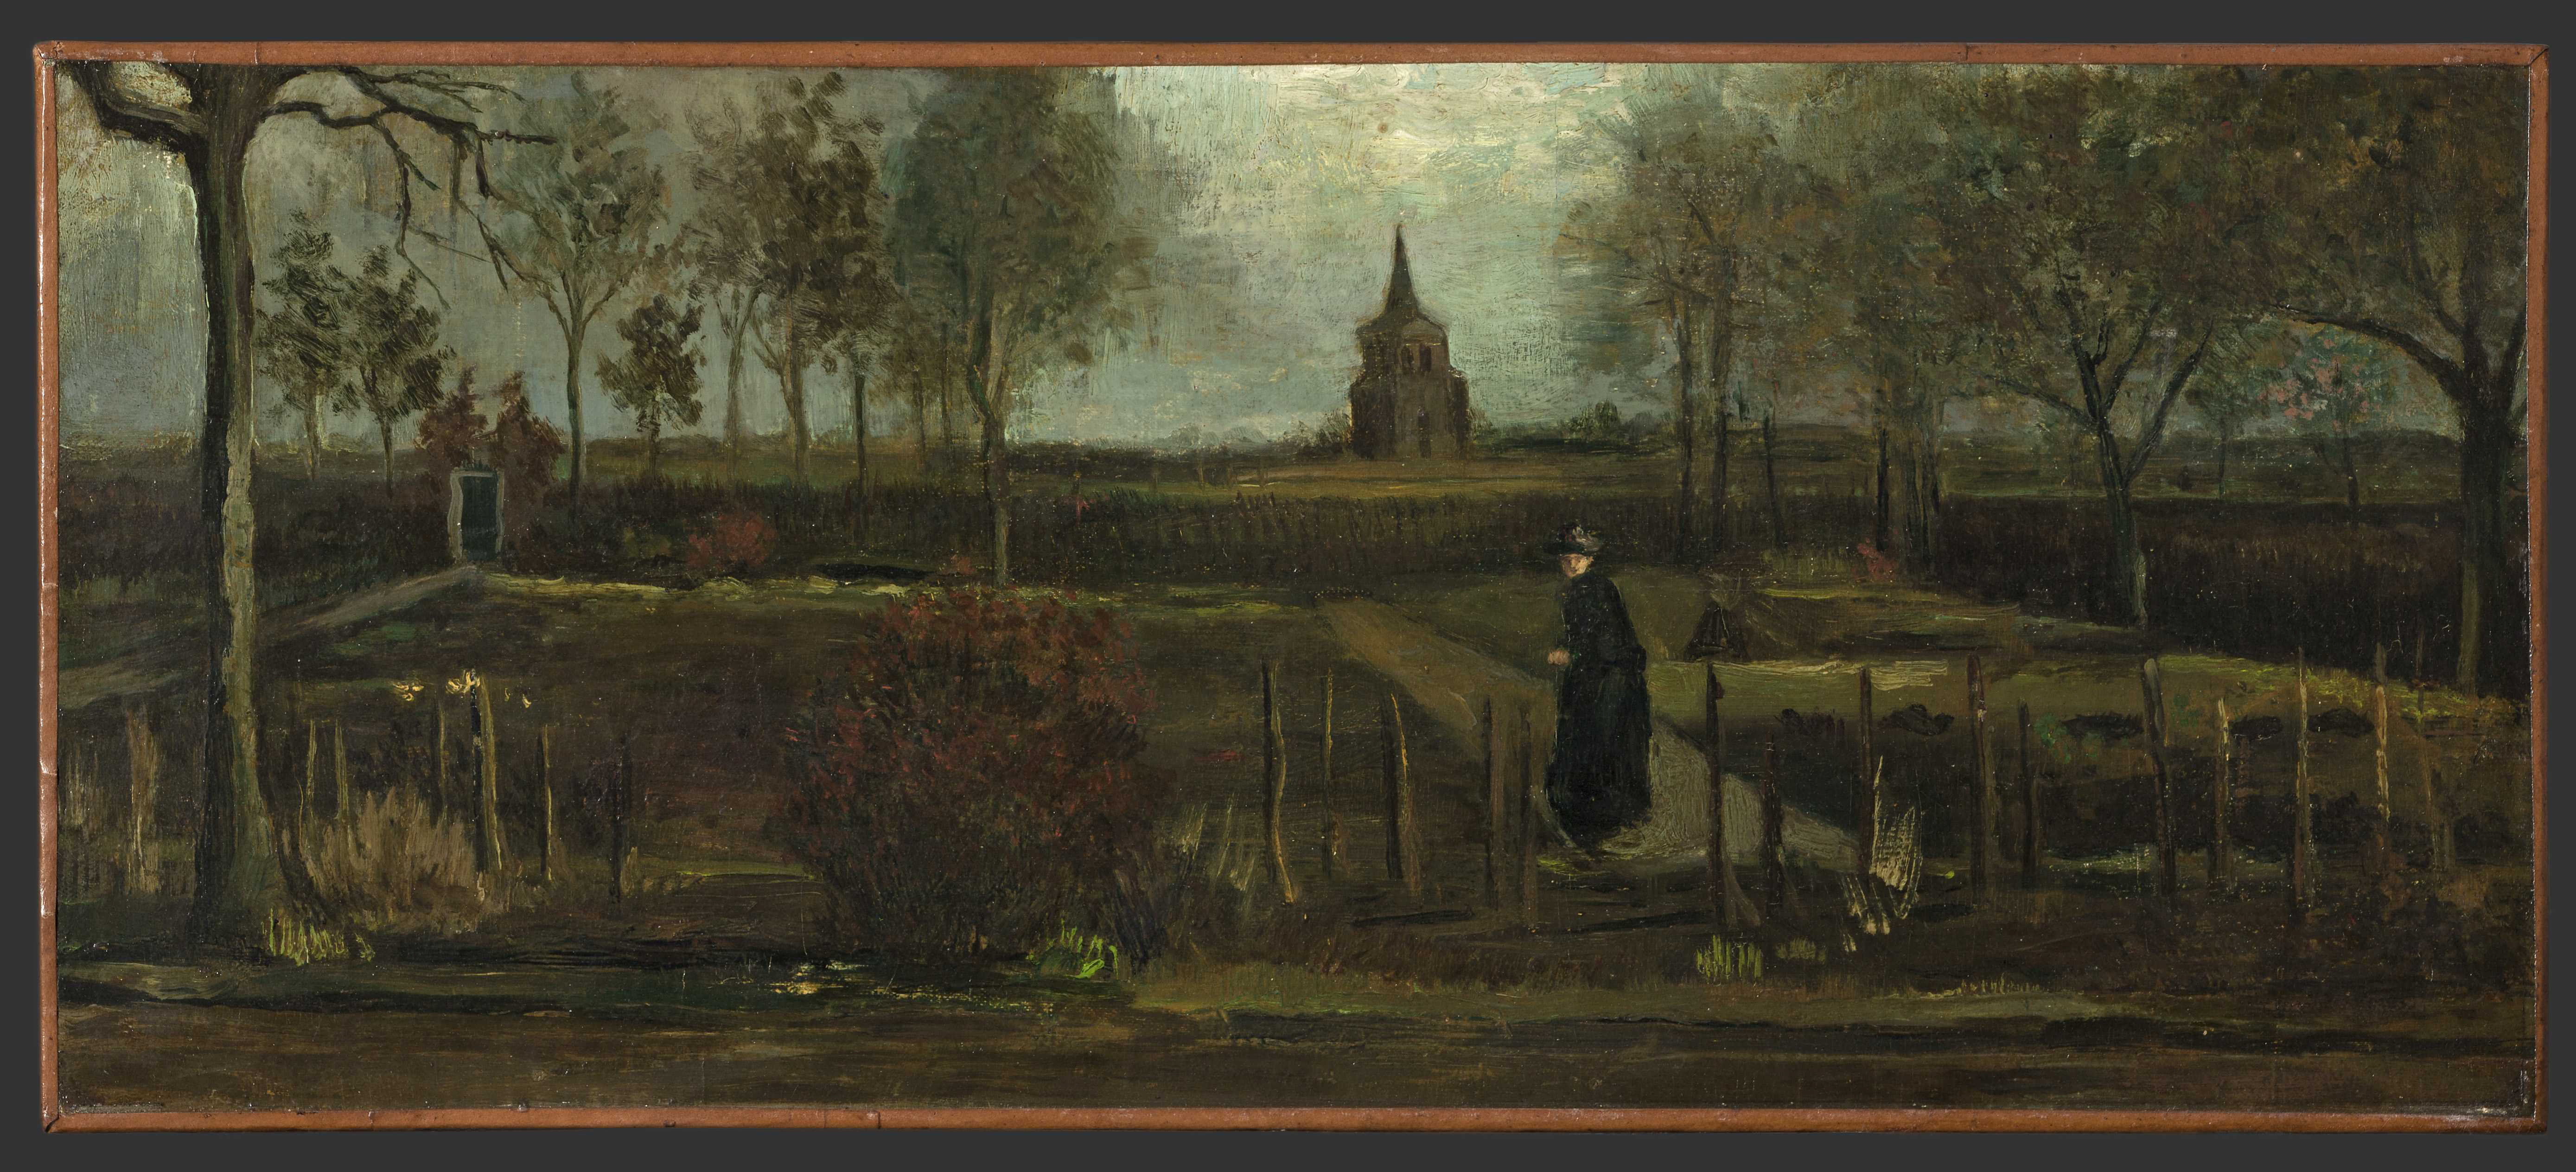 Vincent van Gogh's Spring Garden was stolen from a Netherlands museum closed due to the coronavirus pandemic